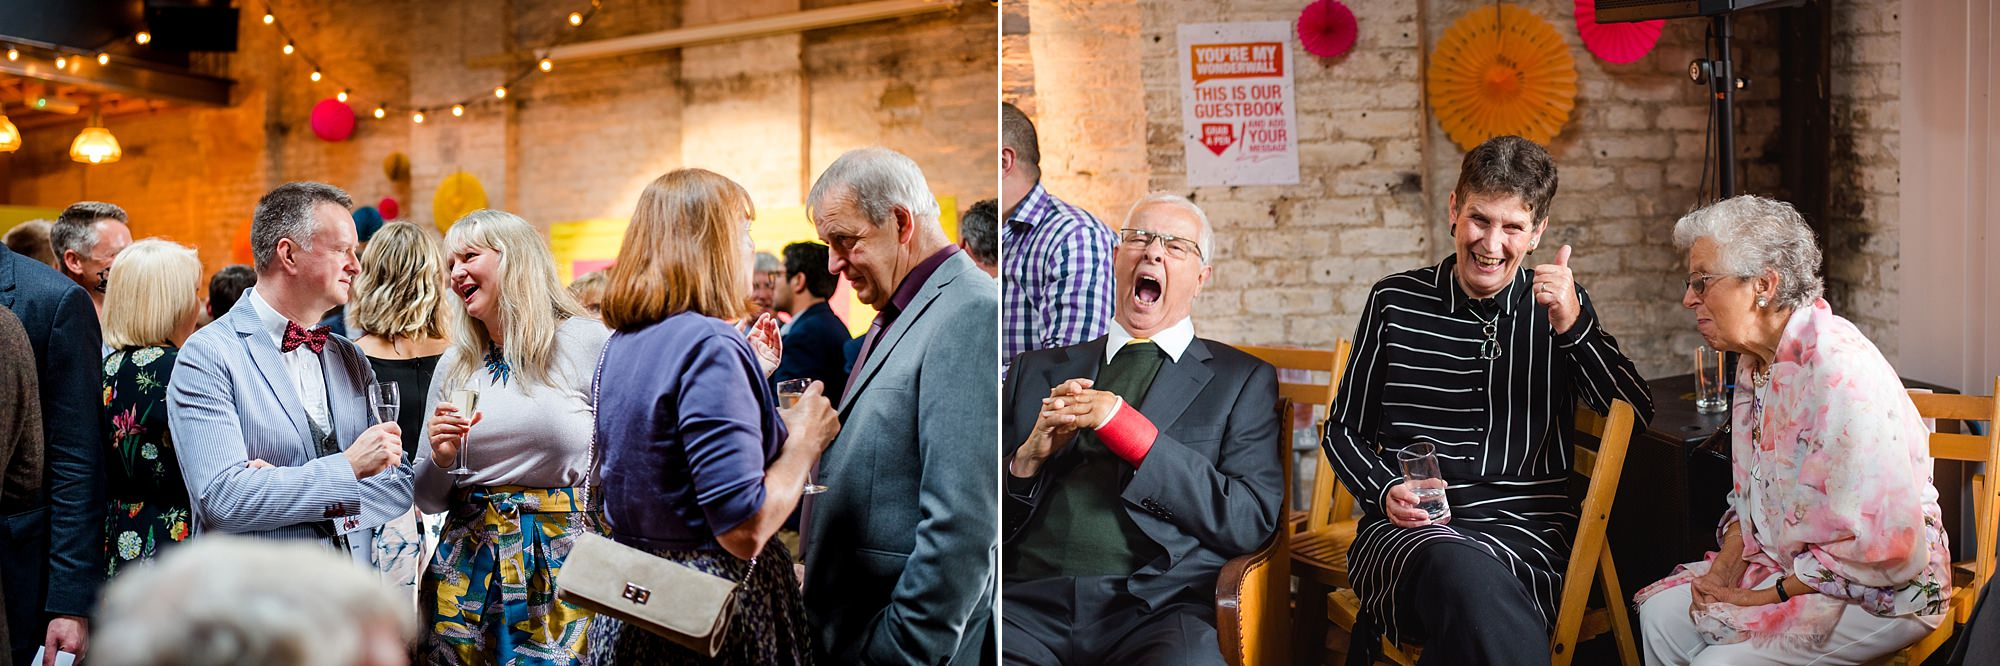 Fun London Wedding guests enjoying drinks reception